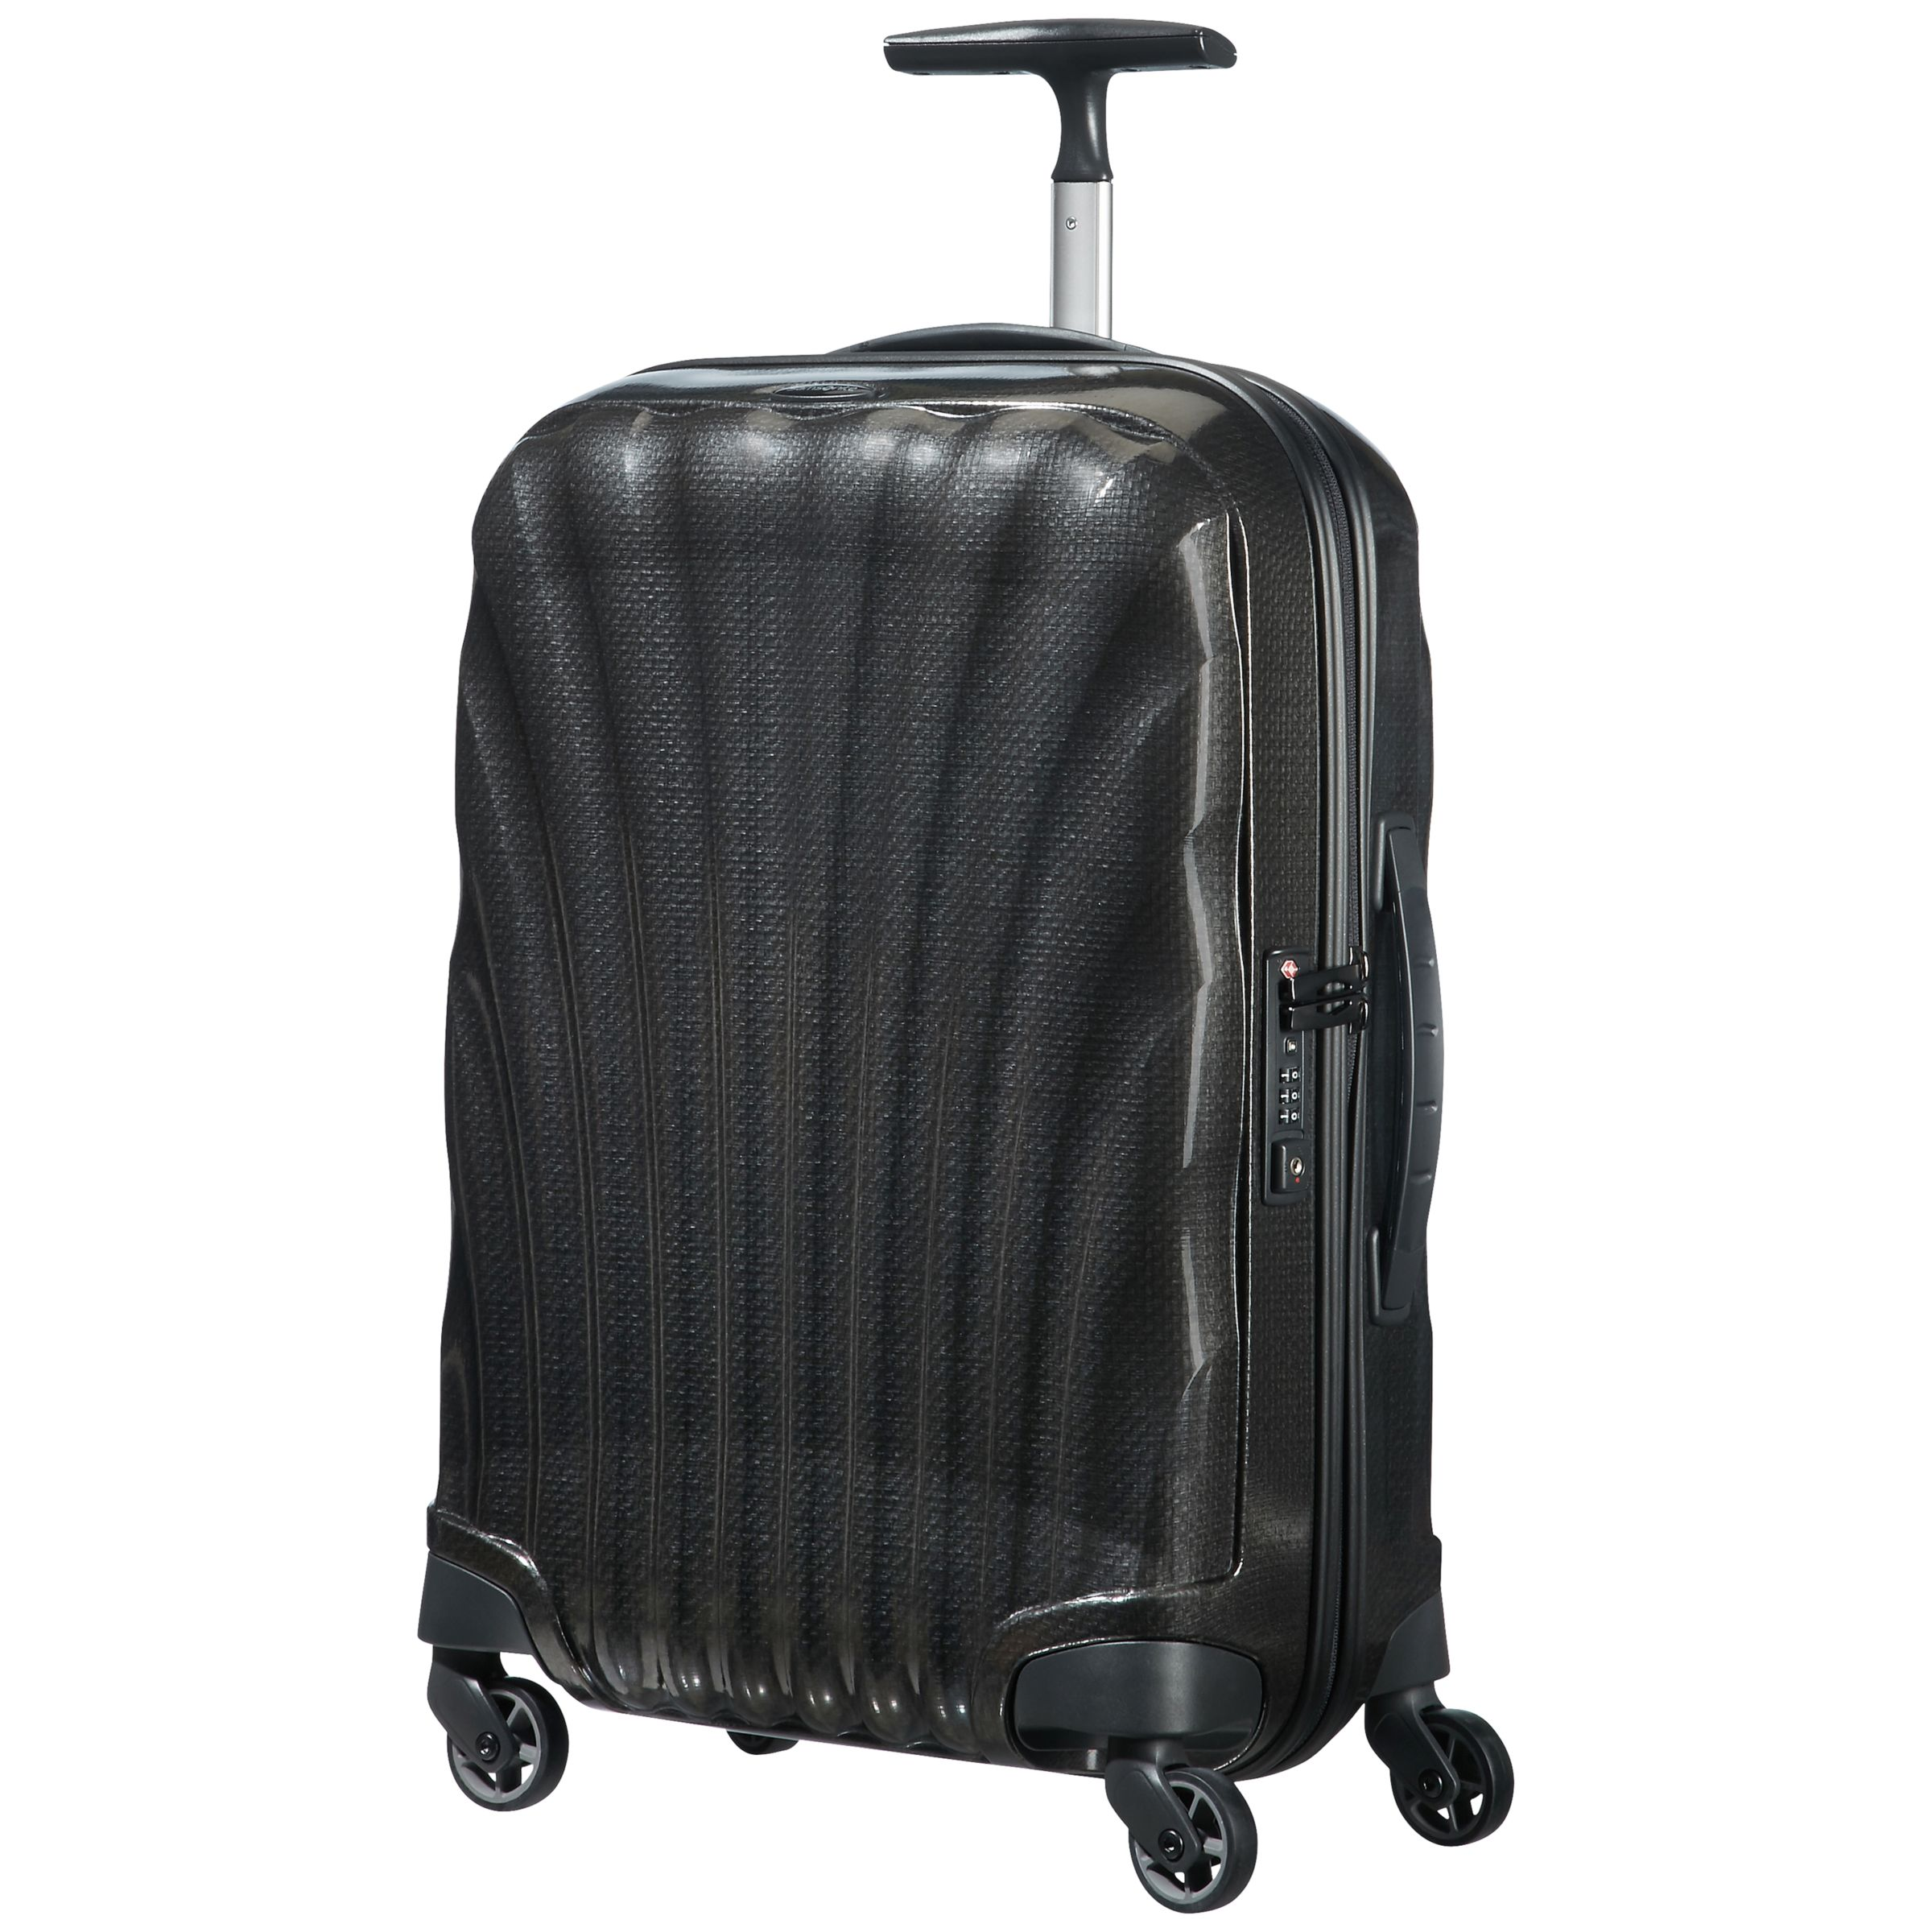 1bc4c5d82bf80a Samsonite Cosmolite 3.0 Spinner 4-Wheel 55cm Cabin Suitcase at John Lewis &  Partners